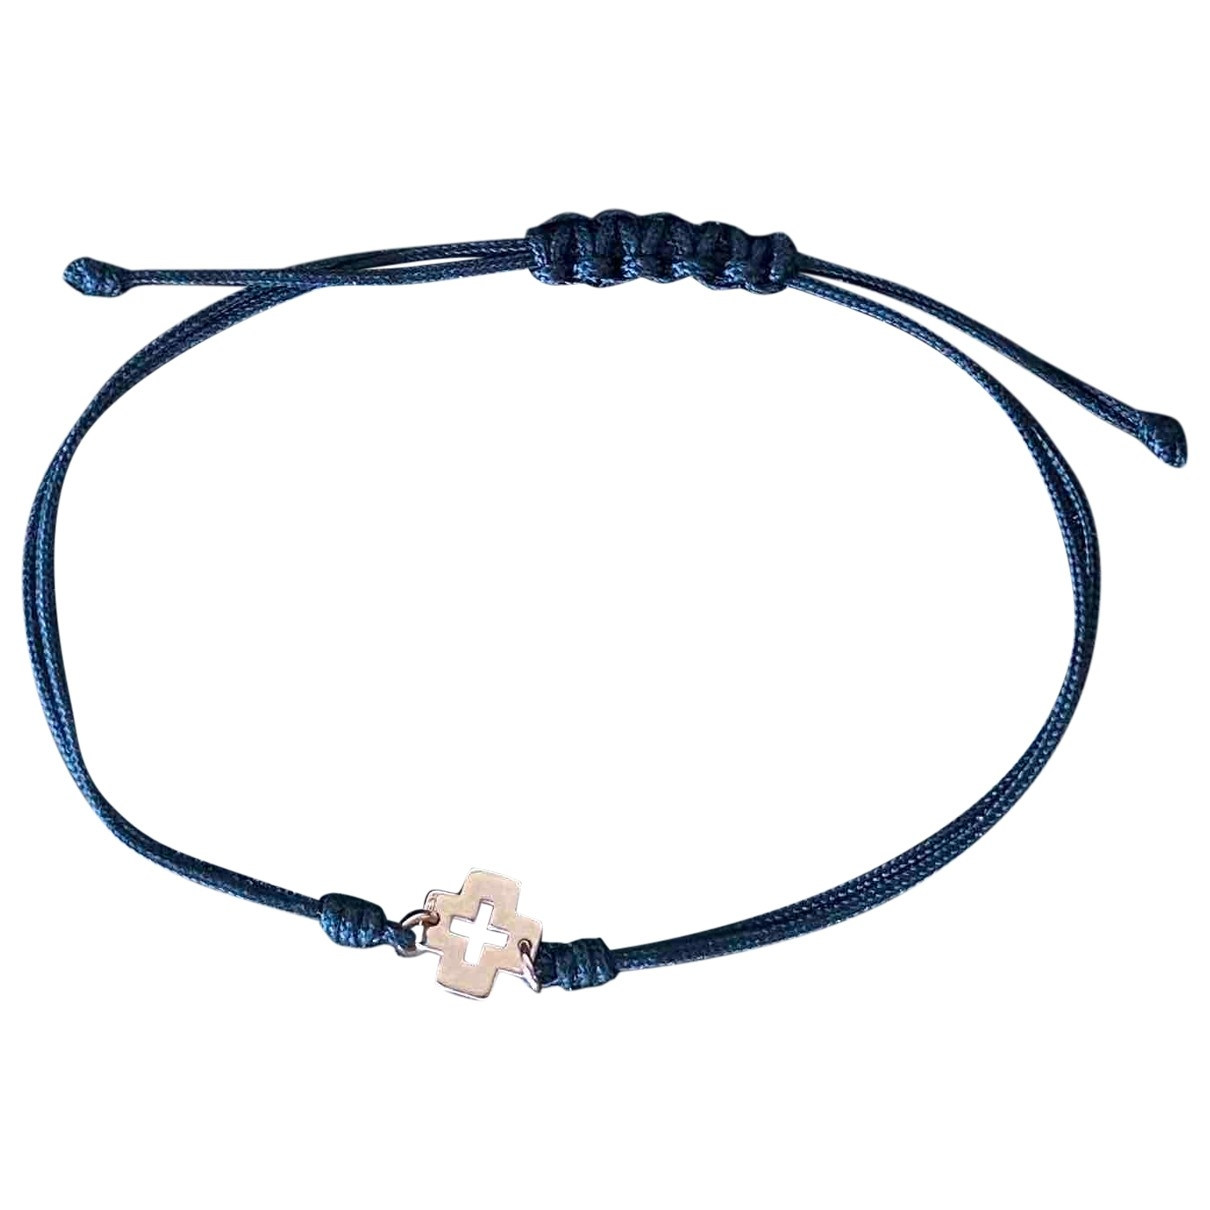 Non Signe / Unsigned Croix Armband in  Schwarz Rosegold